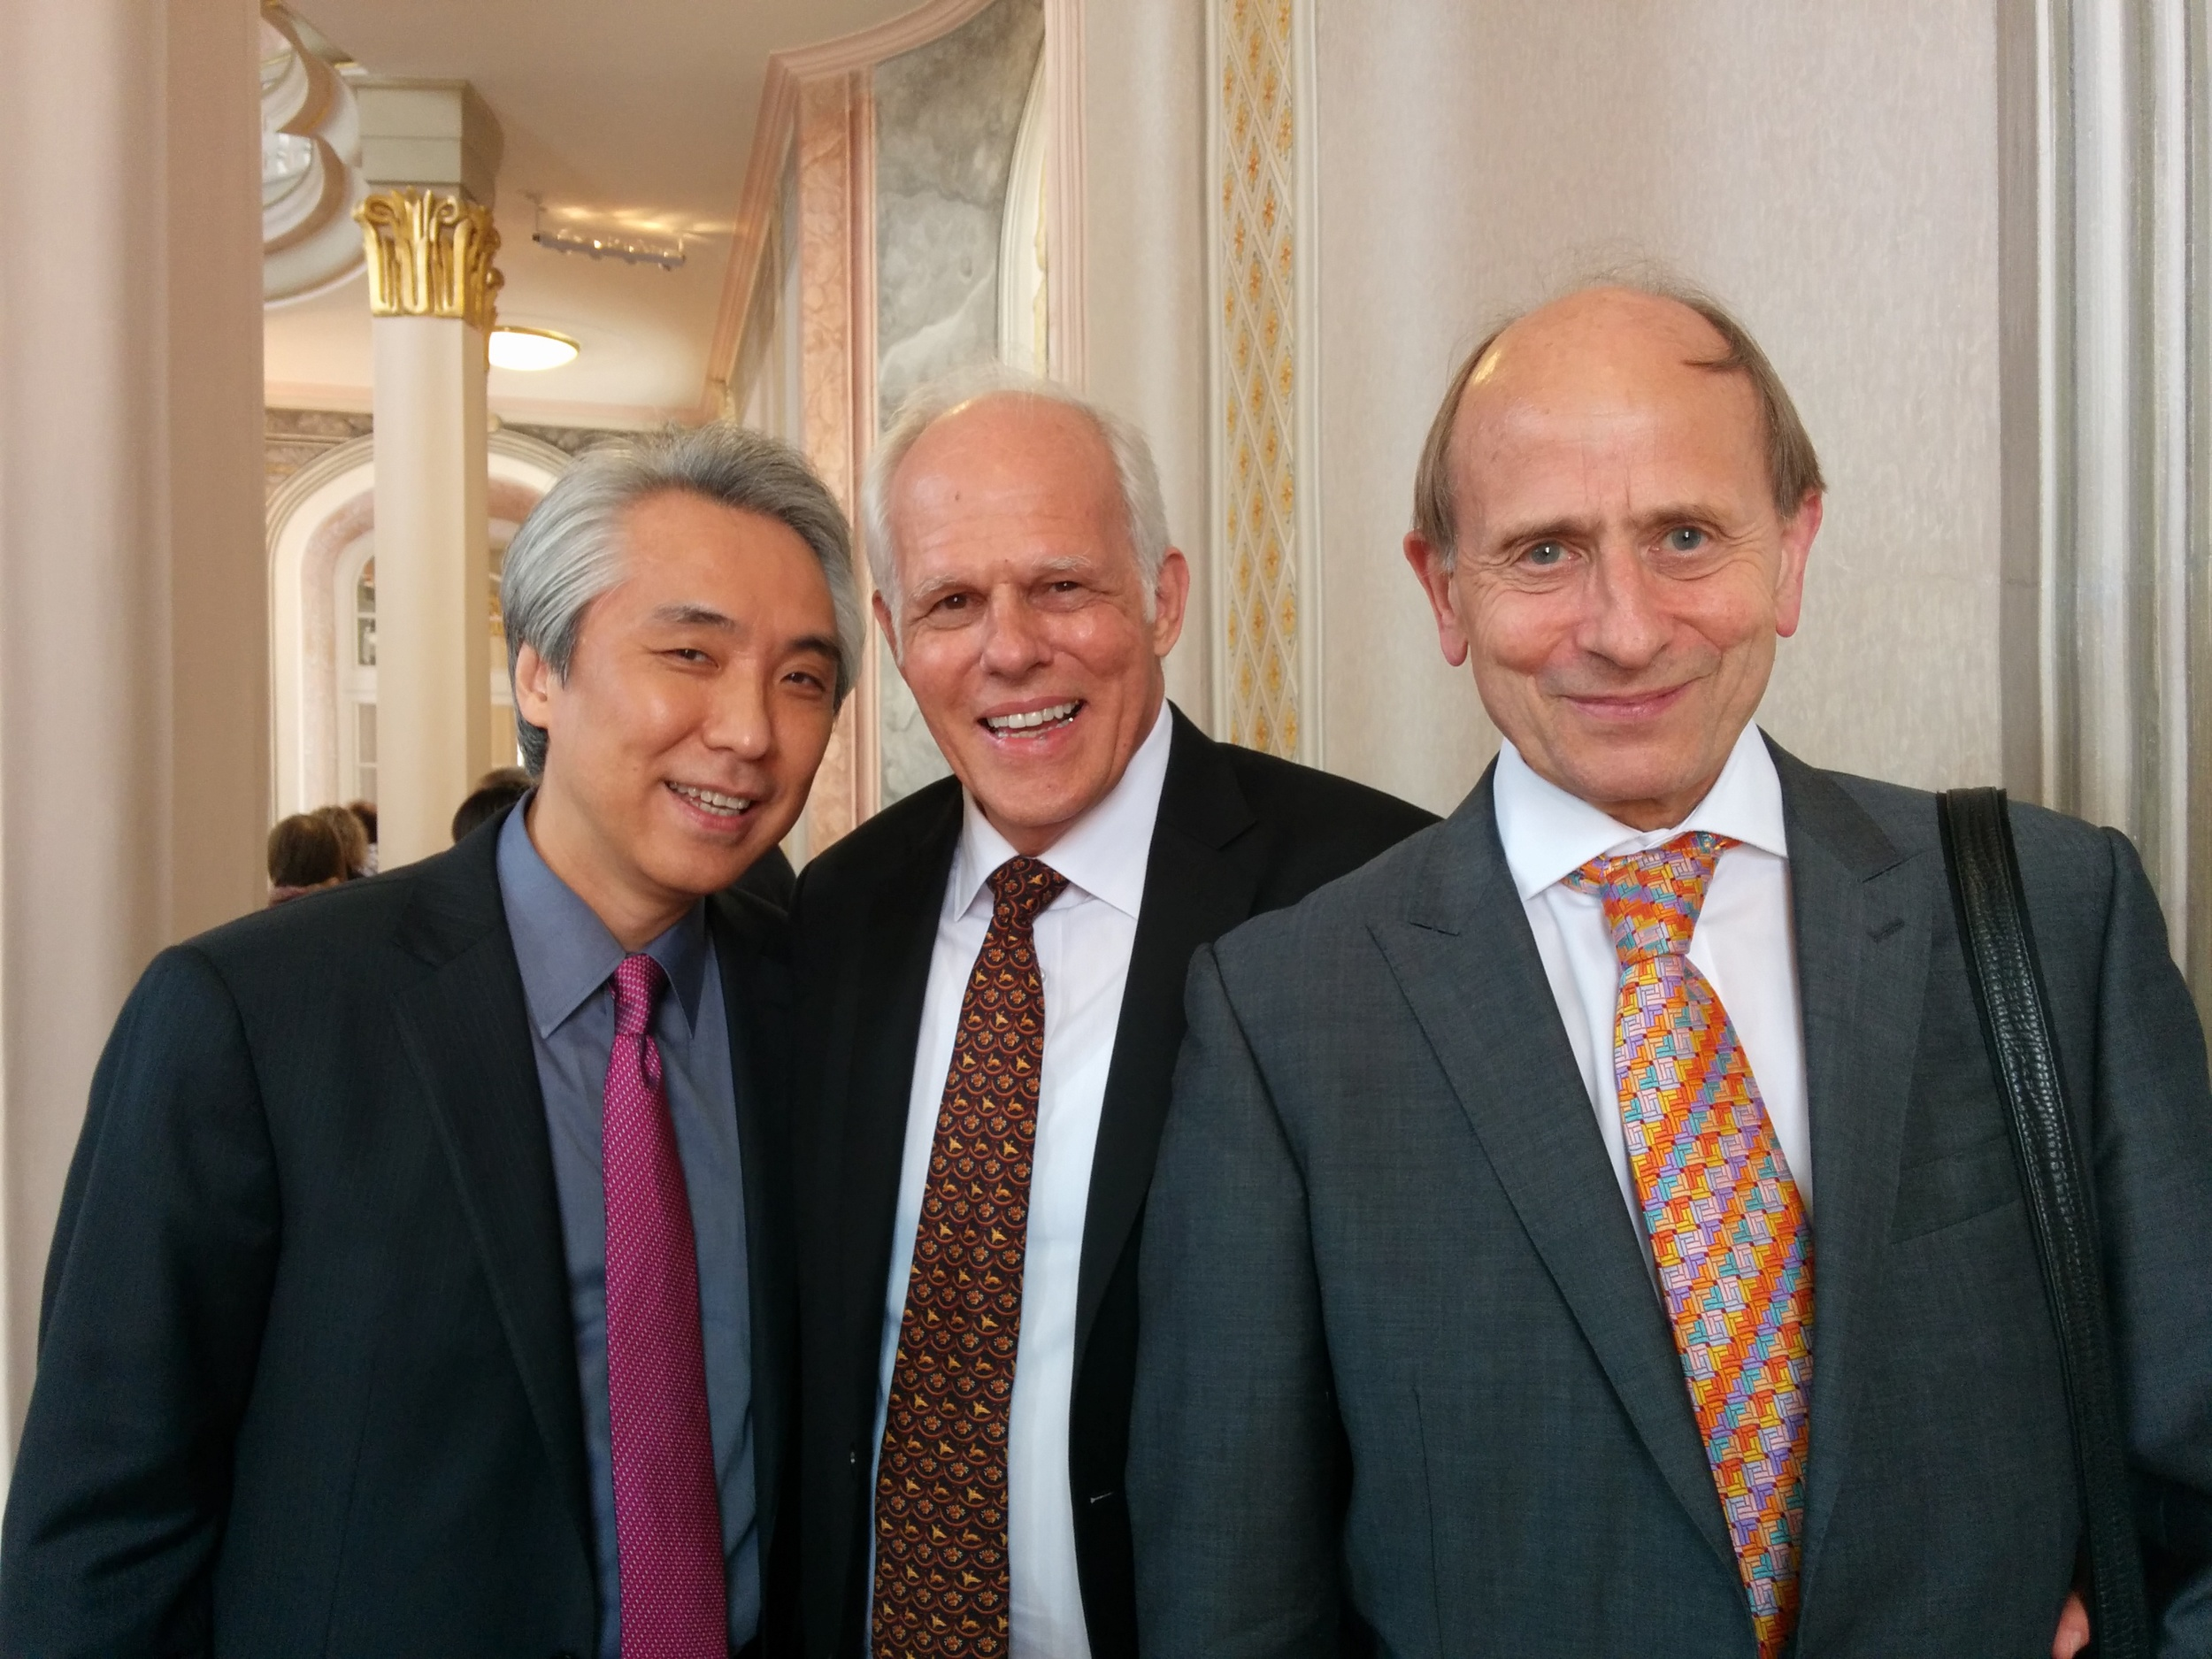 John Owings with Daejin Kim, Professor of Piano at the Korean National University of Arts and Christopher Elton, Professor Emeritus at the Royal Academy of Music, London.